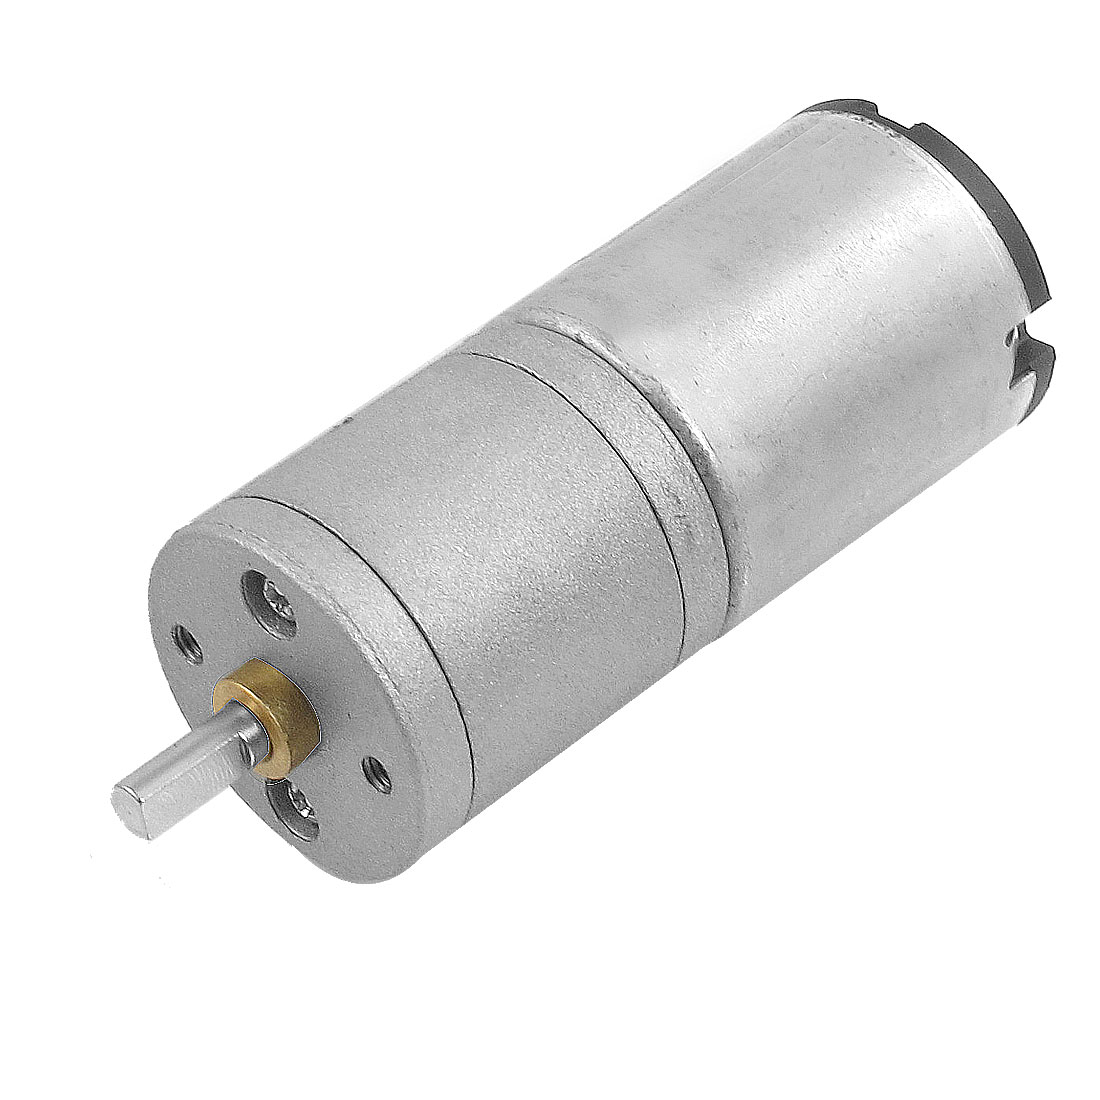 5RPM Output Speed 6V Rated Voltage DC Geared Speed Reduce Motor